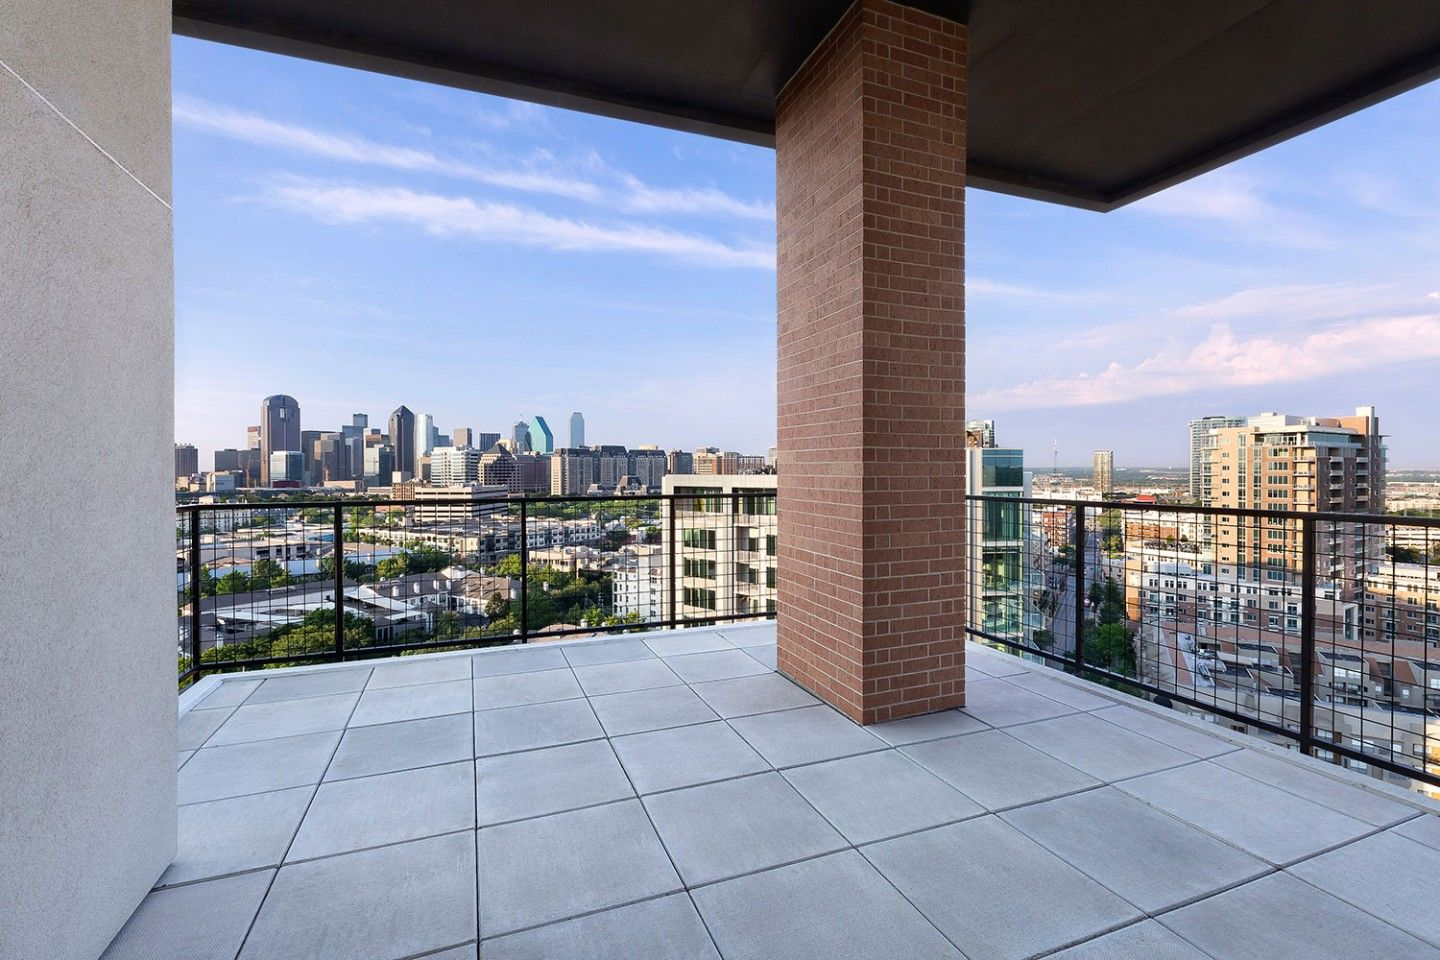 Pin on * Uptown Dallas Apartments Insider Guide